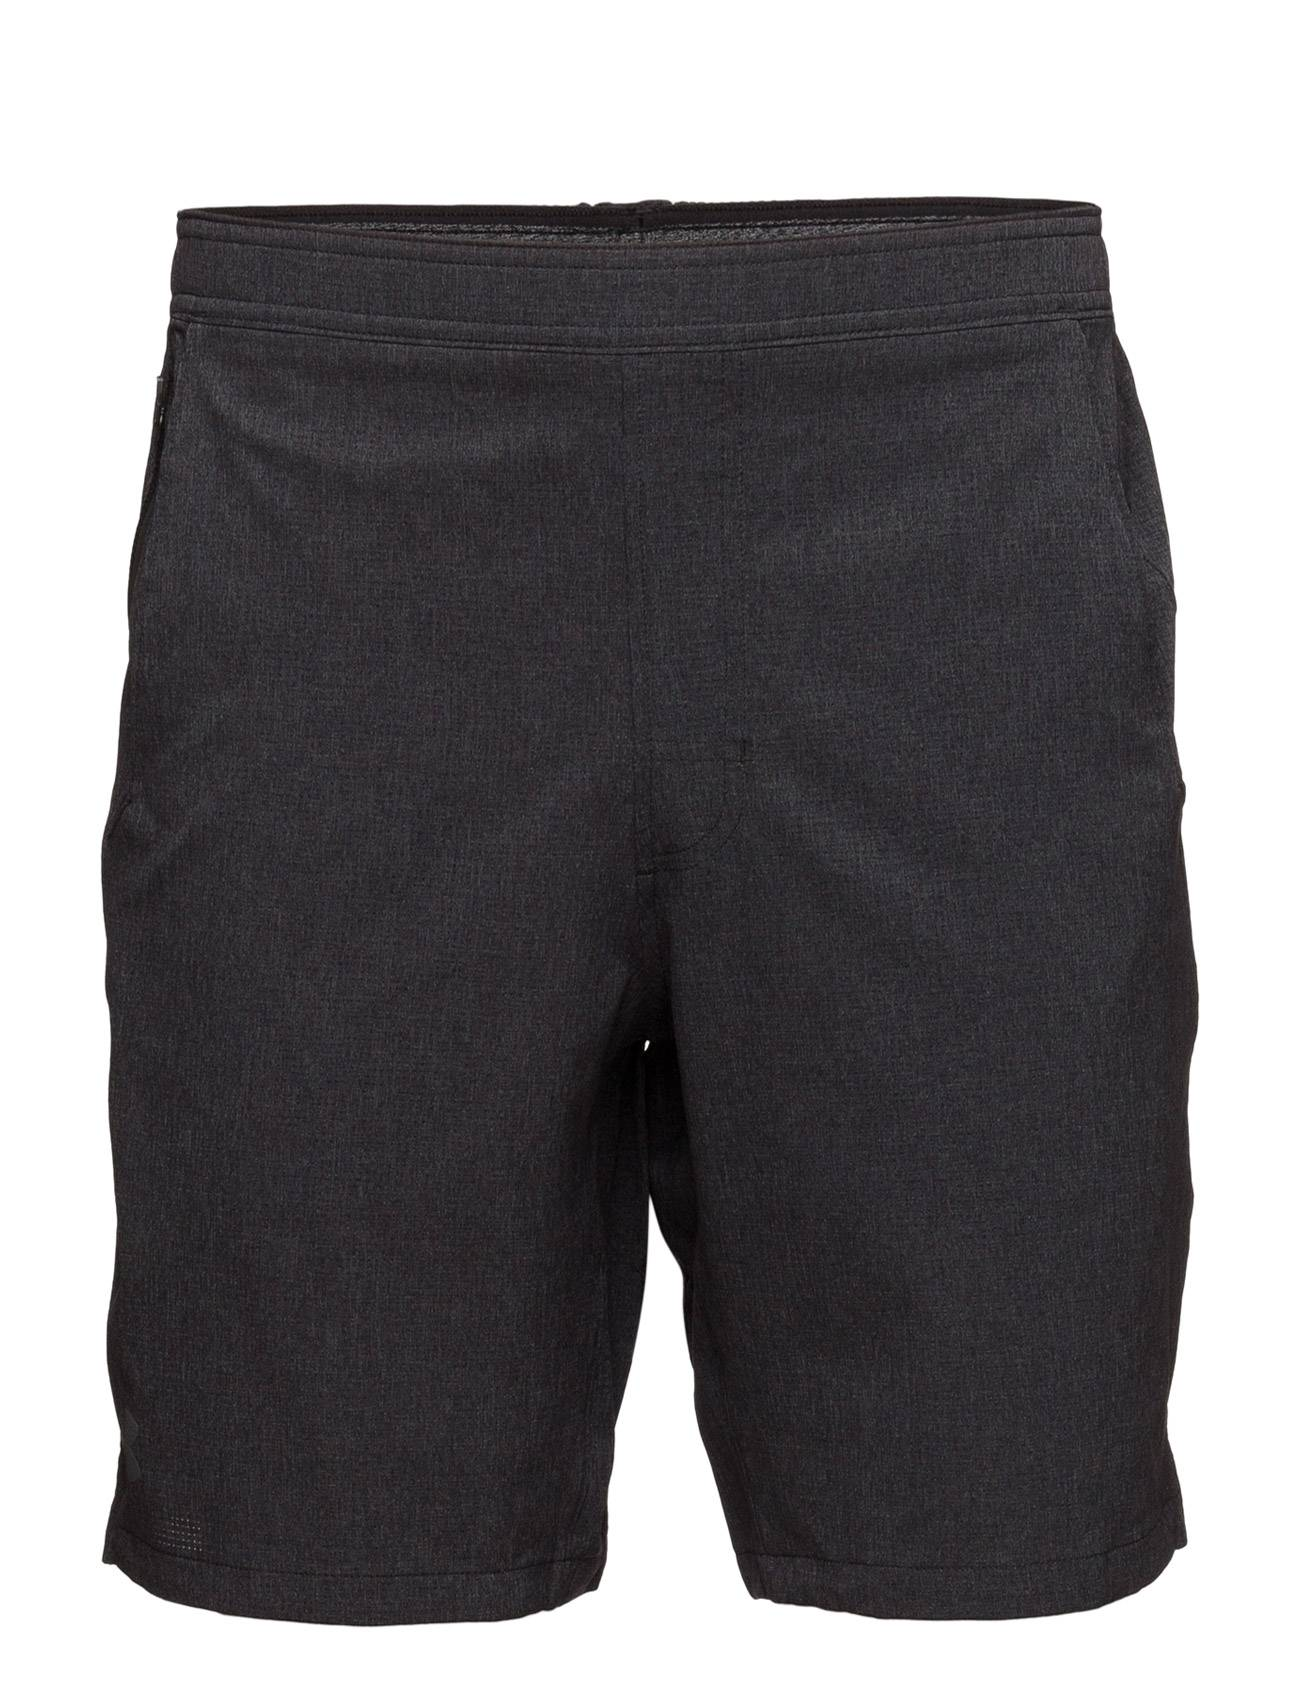 Under Armour Elevated Training Short